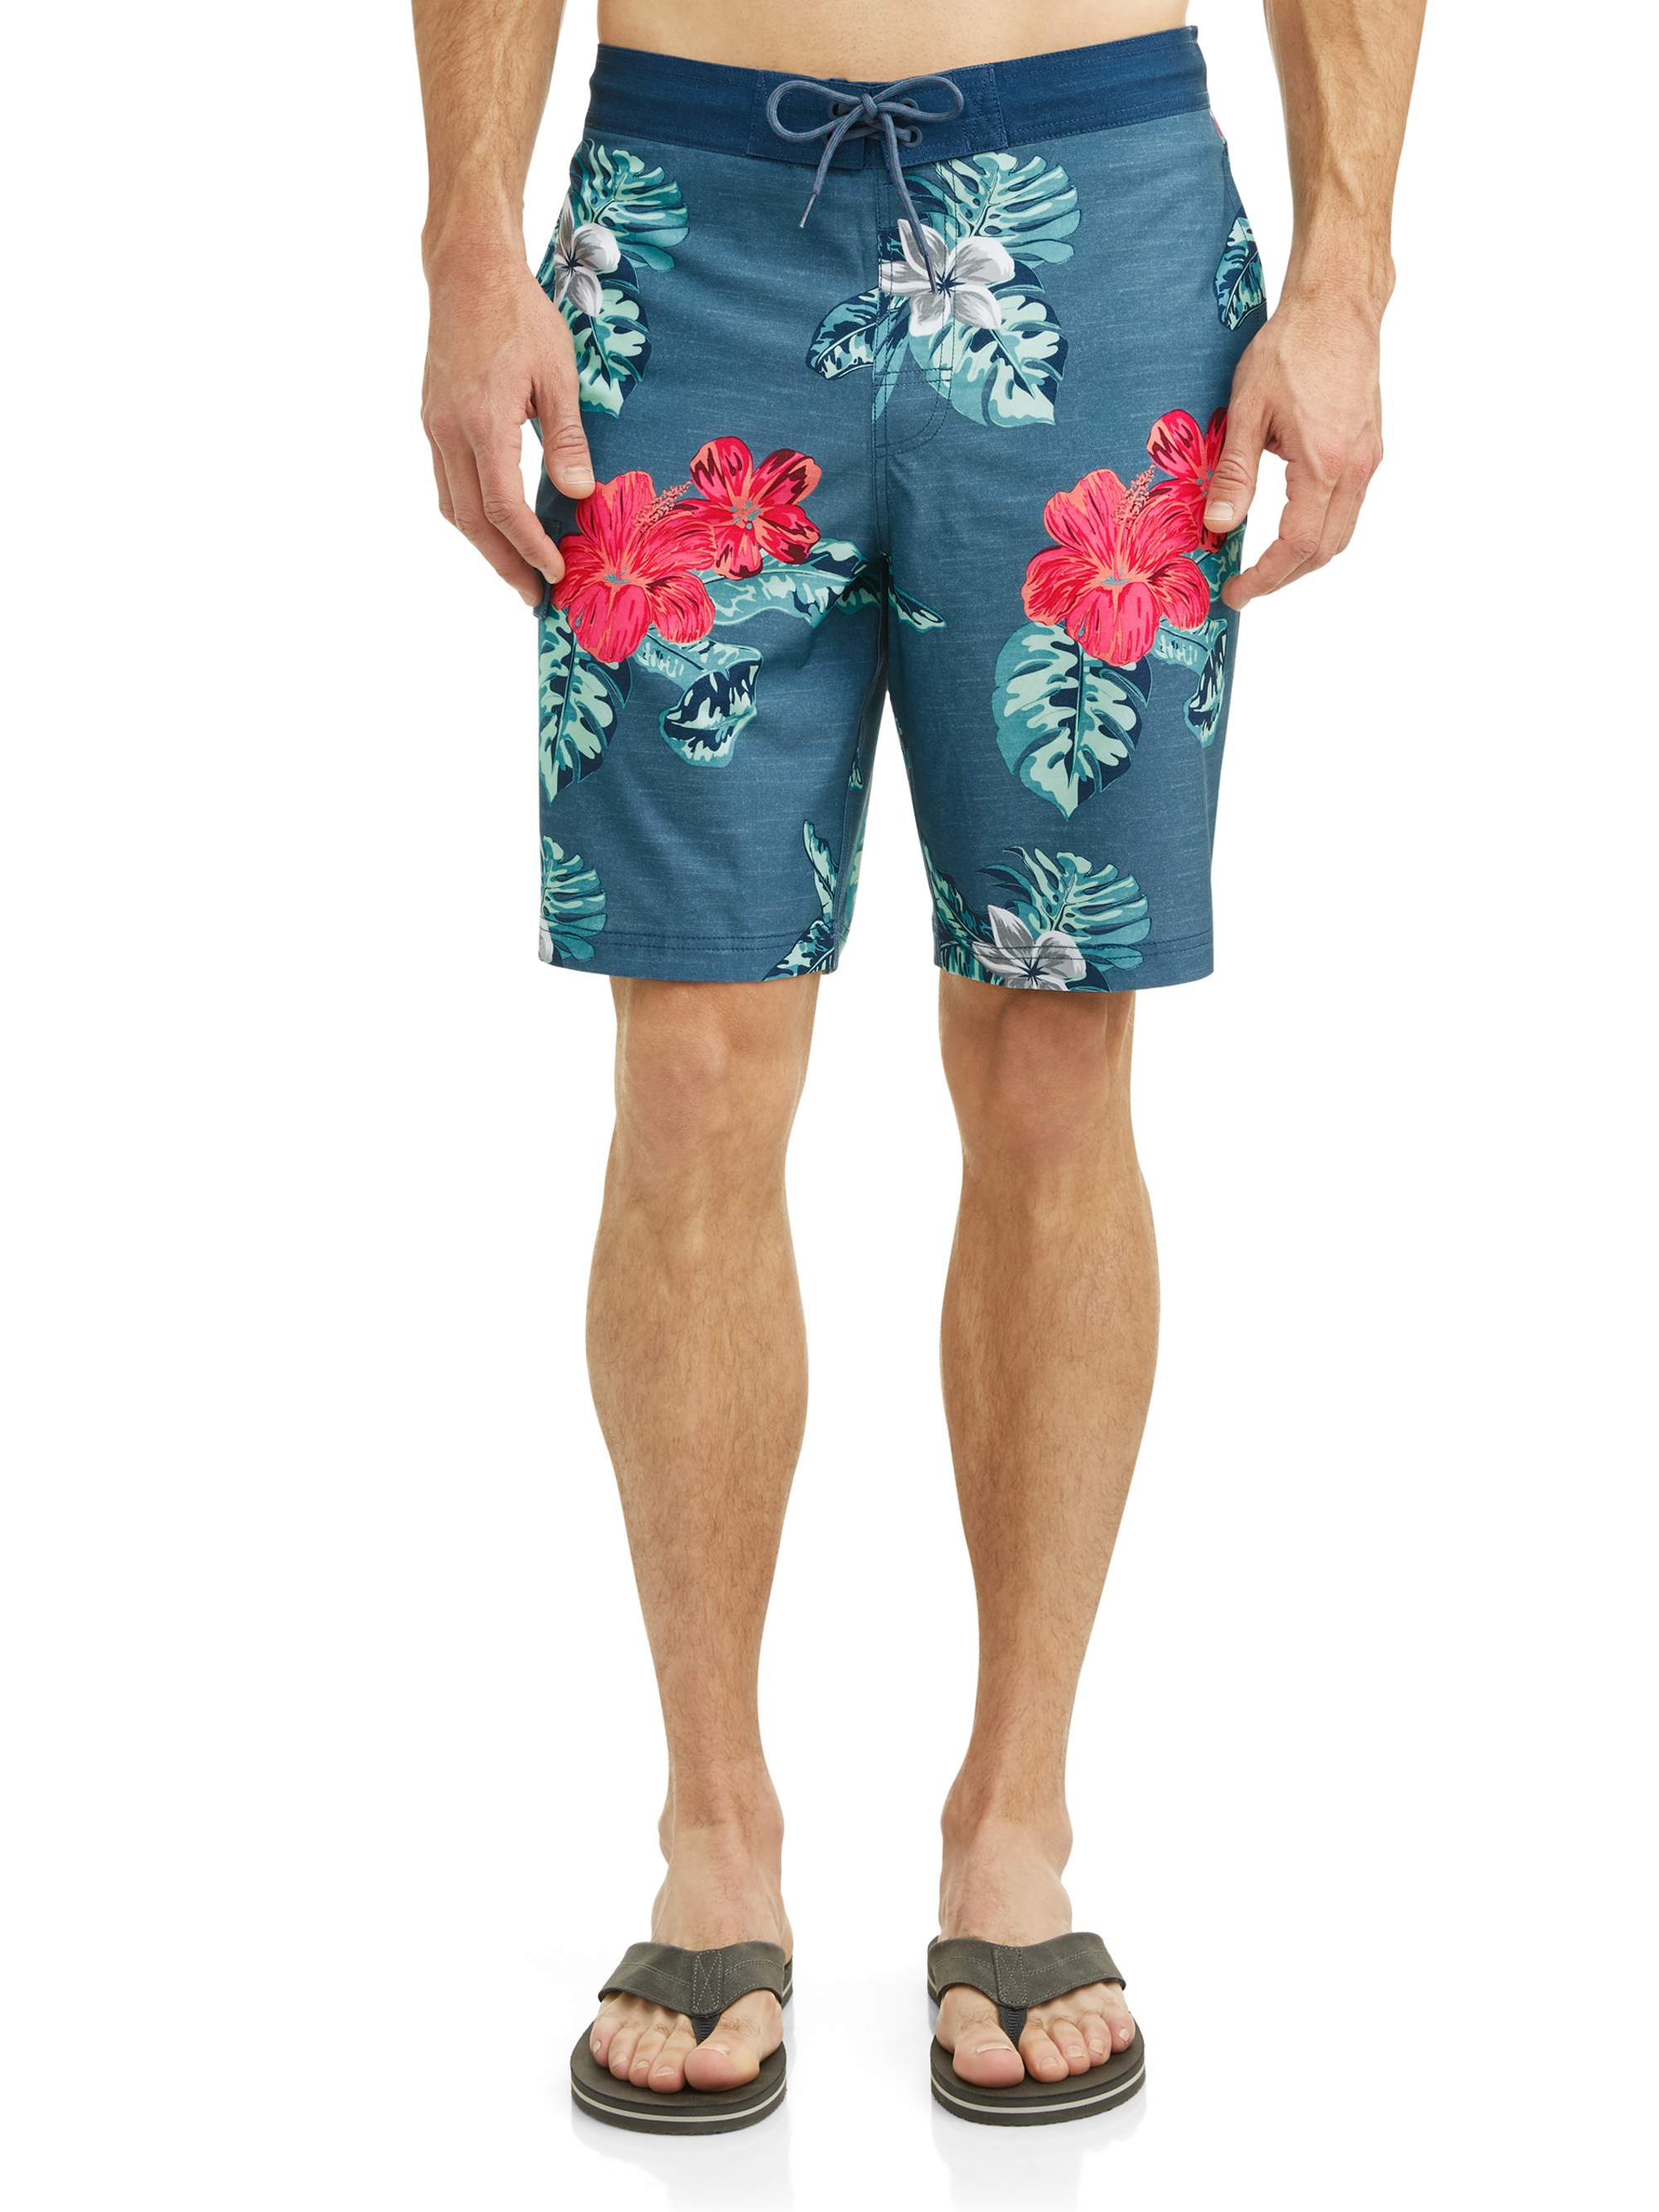 George Men's Hibiscus 9-Inch E-board Swim Short, up to size 5XL